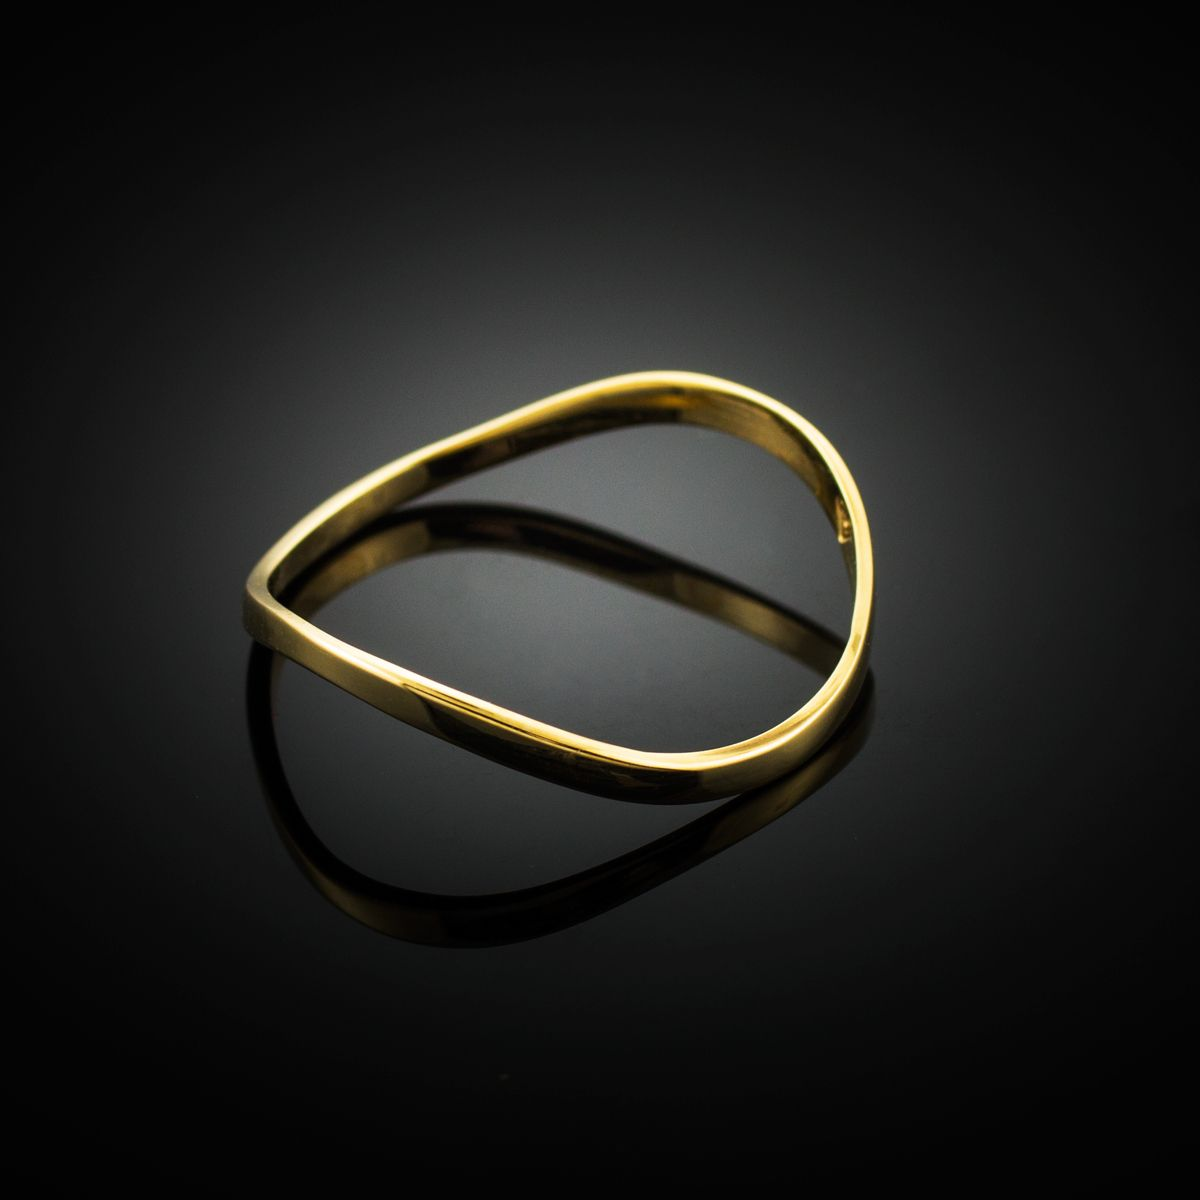 Gold Wavy Thumb Ring Thumb Rings Gold Thumb Rings Gold Rings